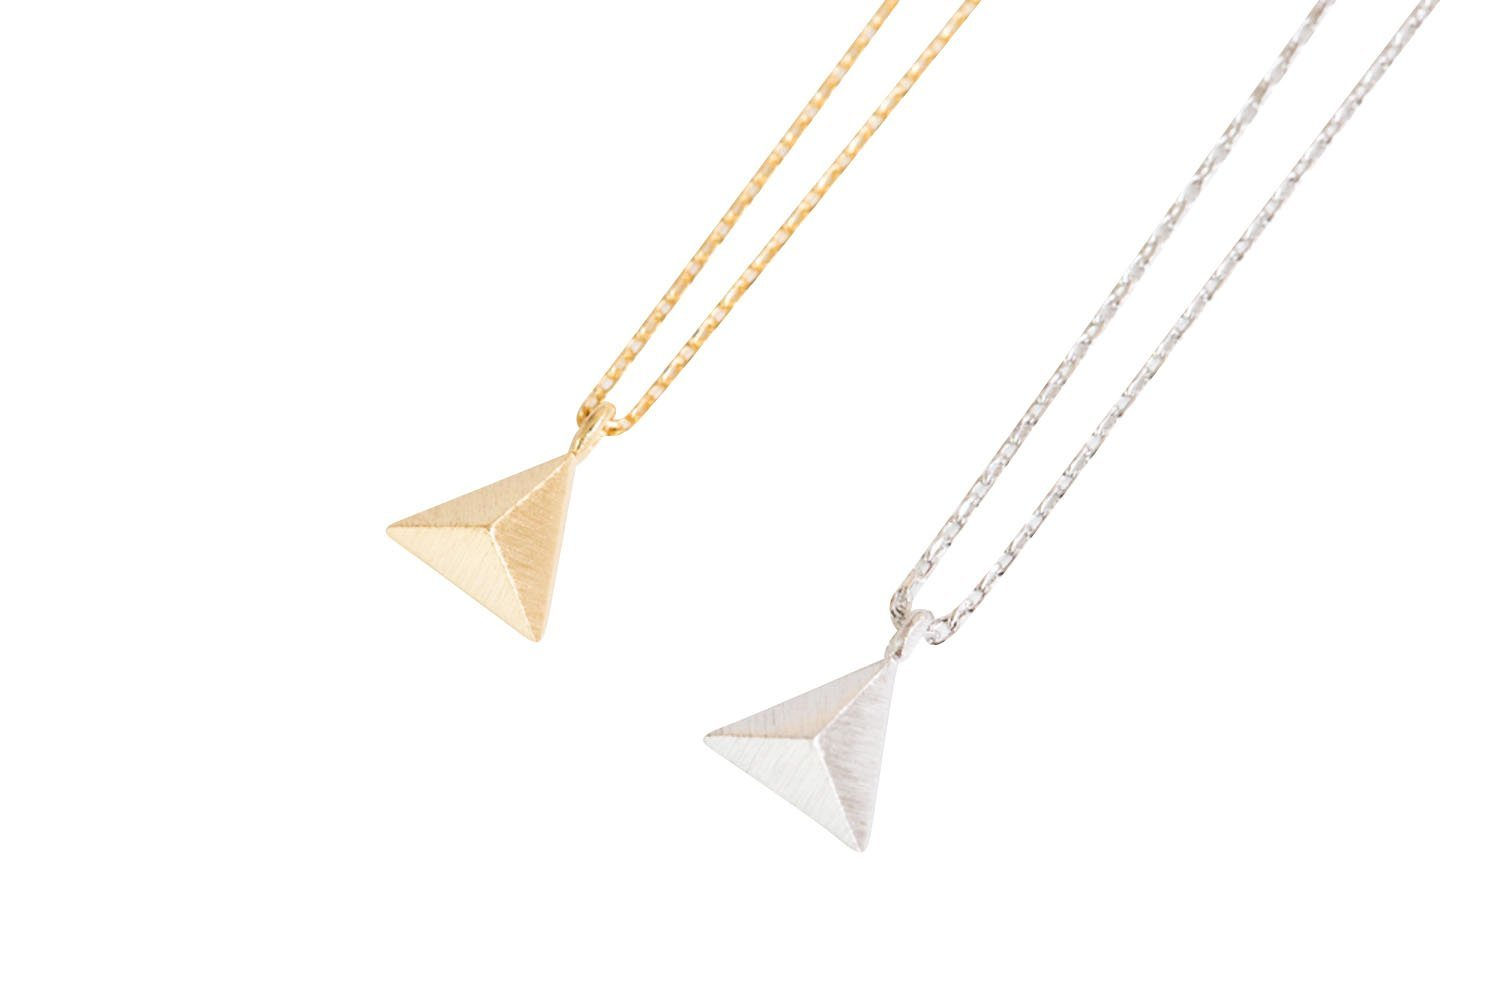 Solid Triangle Necklace-es , triangle jewelry, triangle necklace, triangle shape jewelry, triangle shape necklace, triangle jewellry, geometric jewe